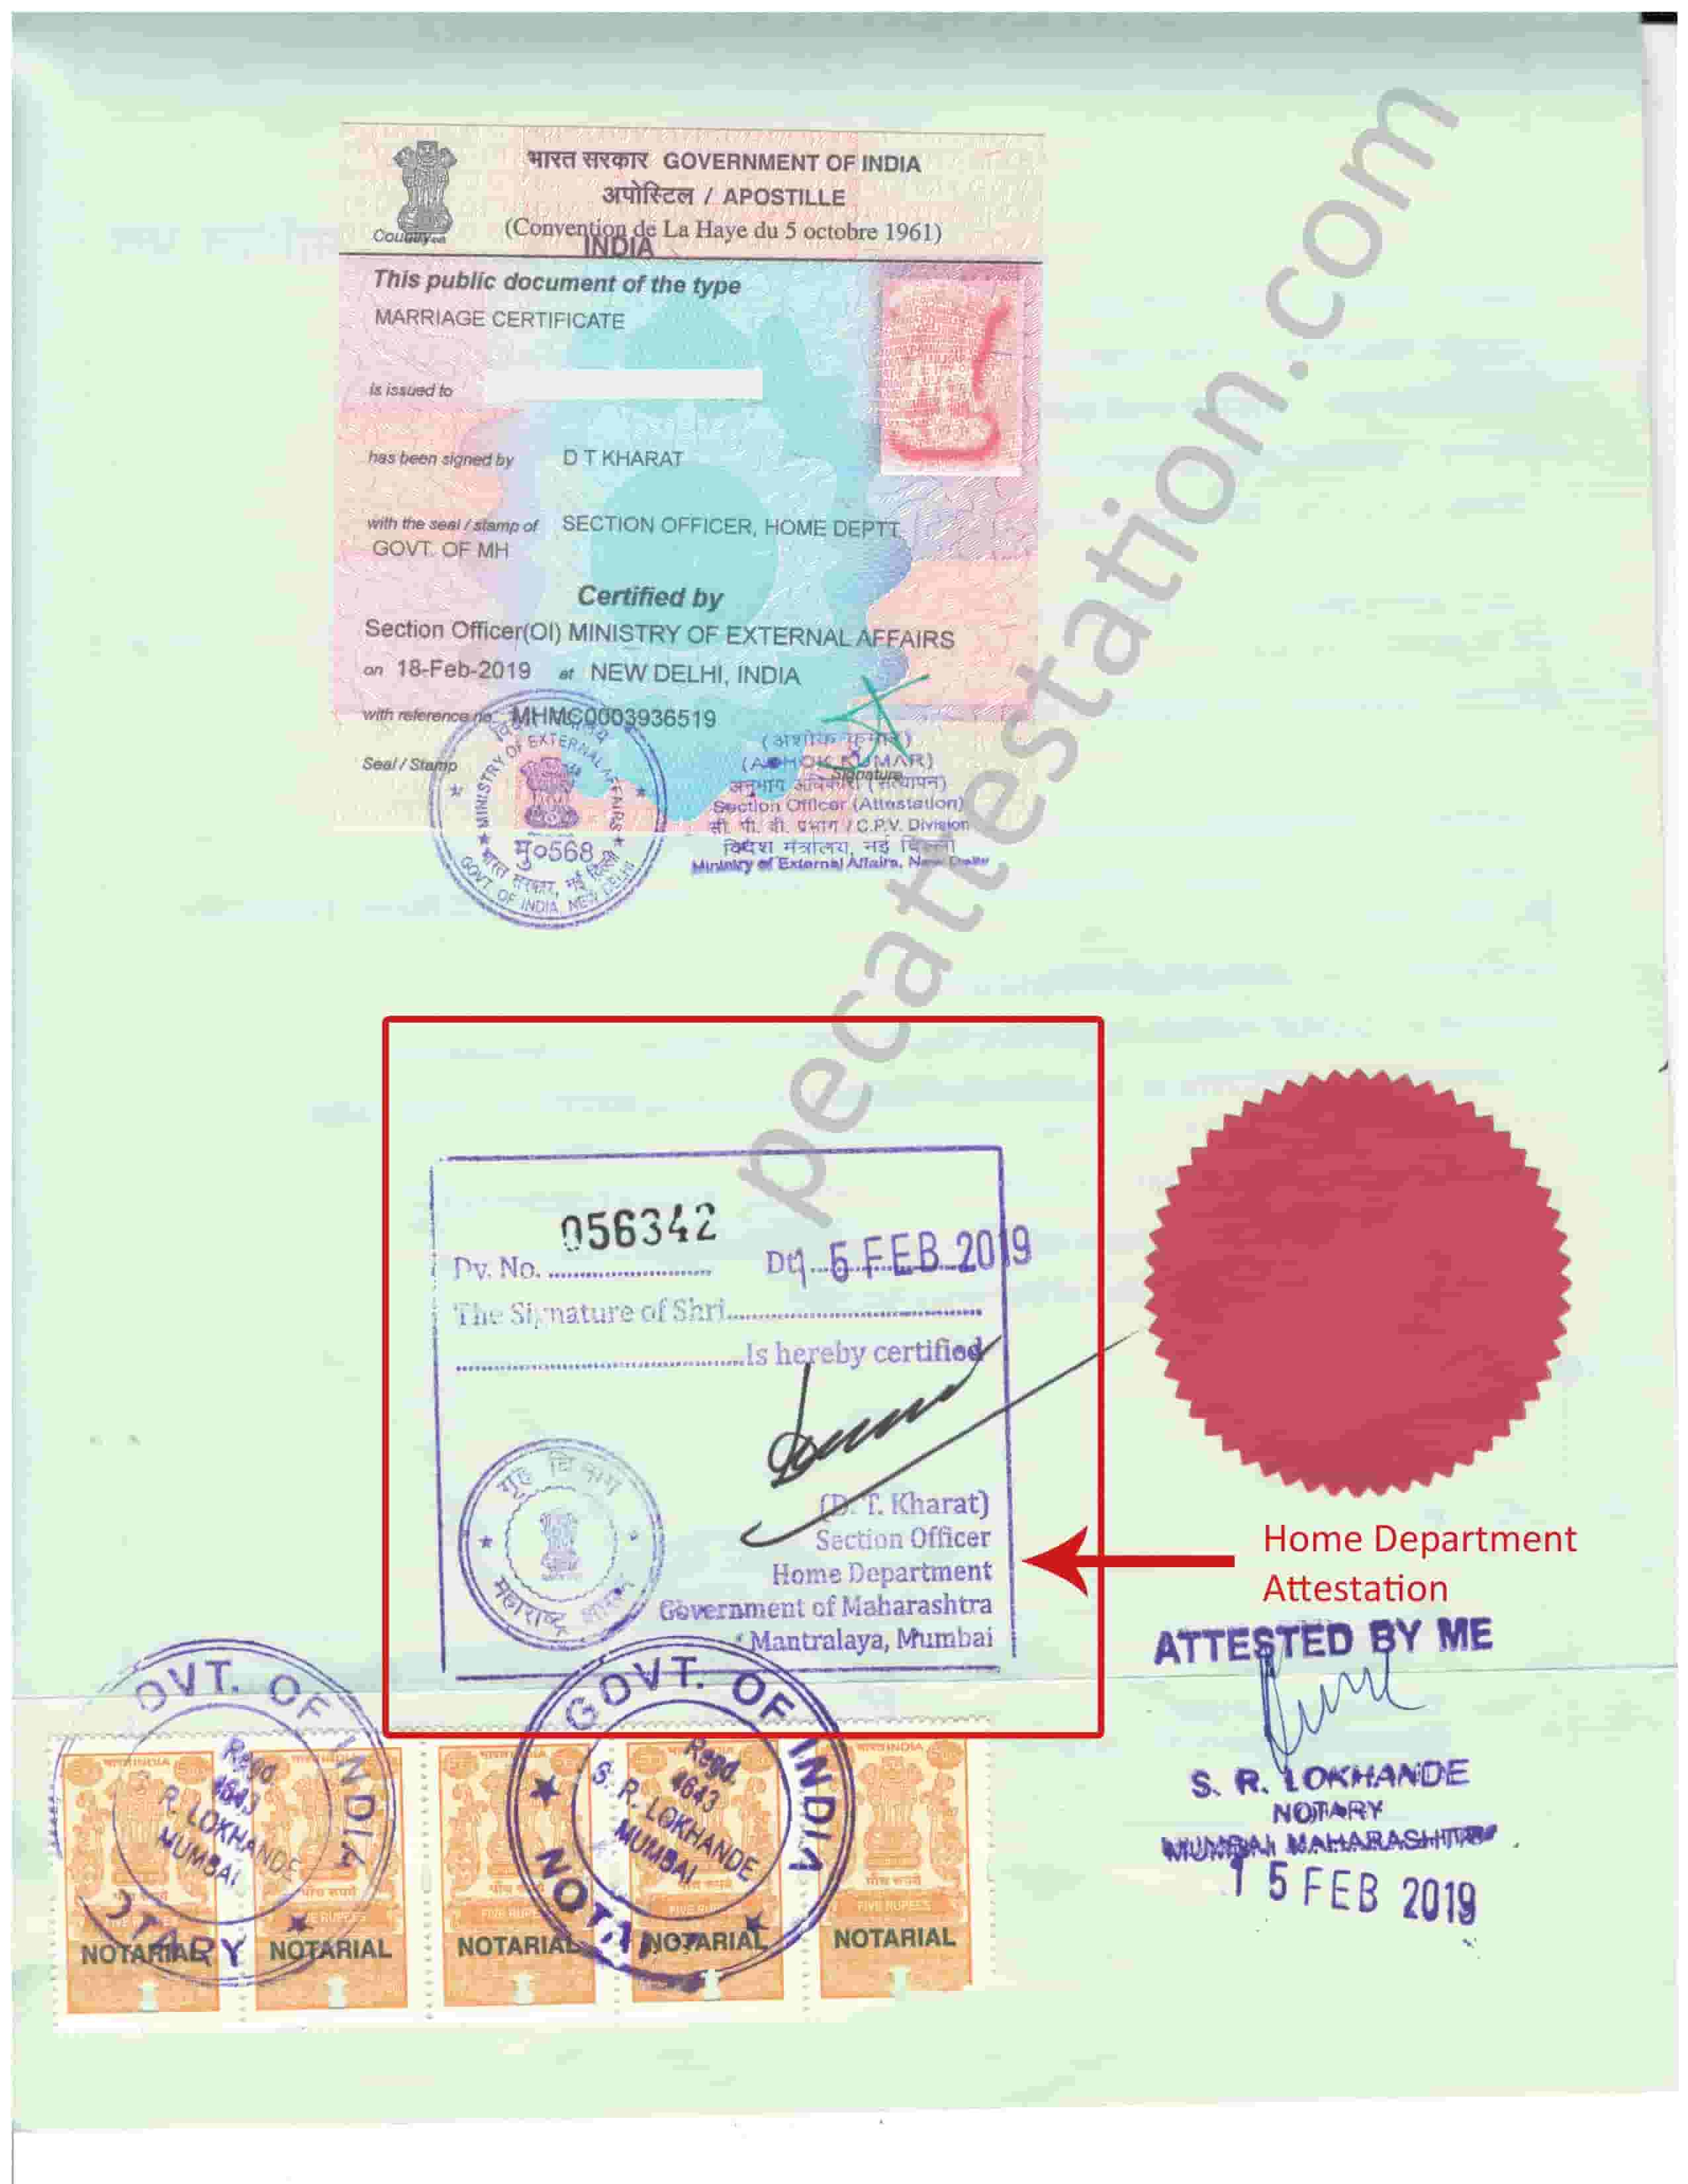 Home Department Attestation for Marriage Certificate